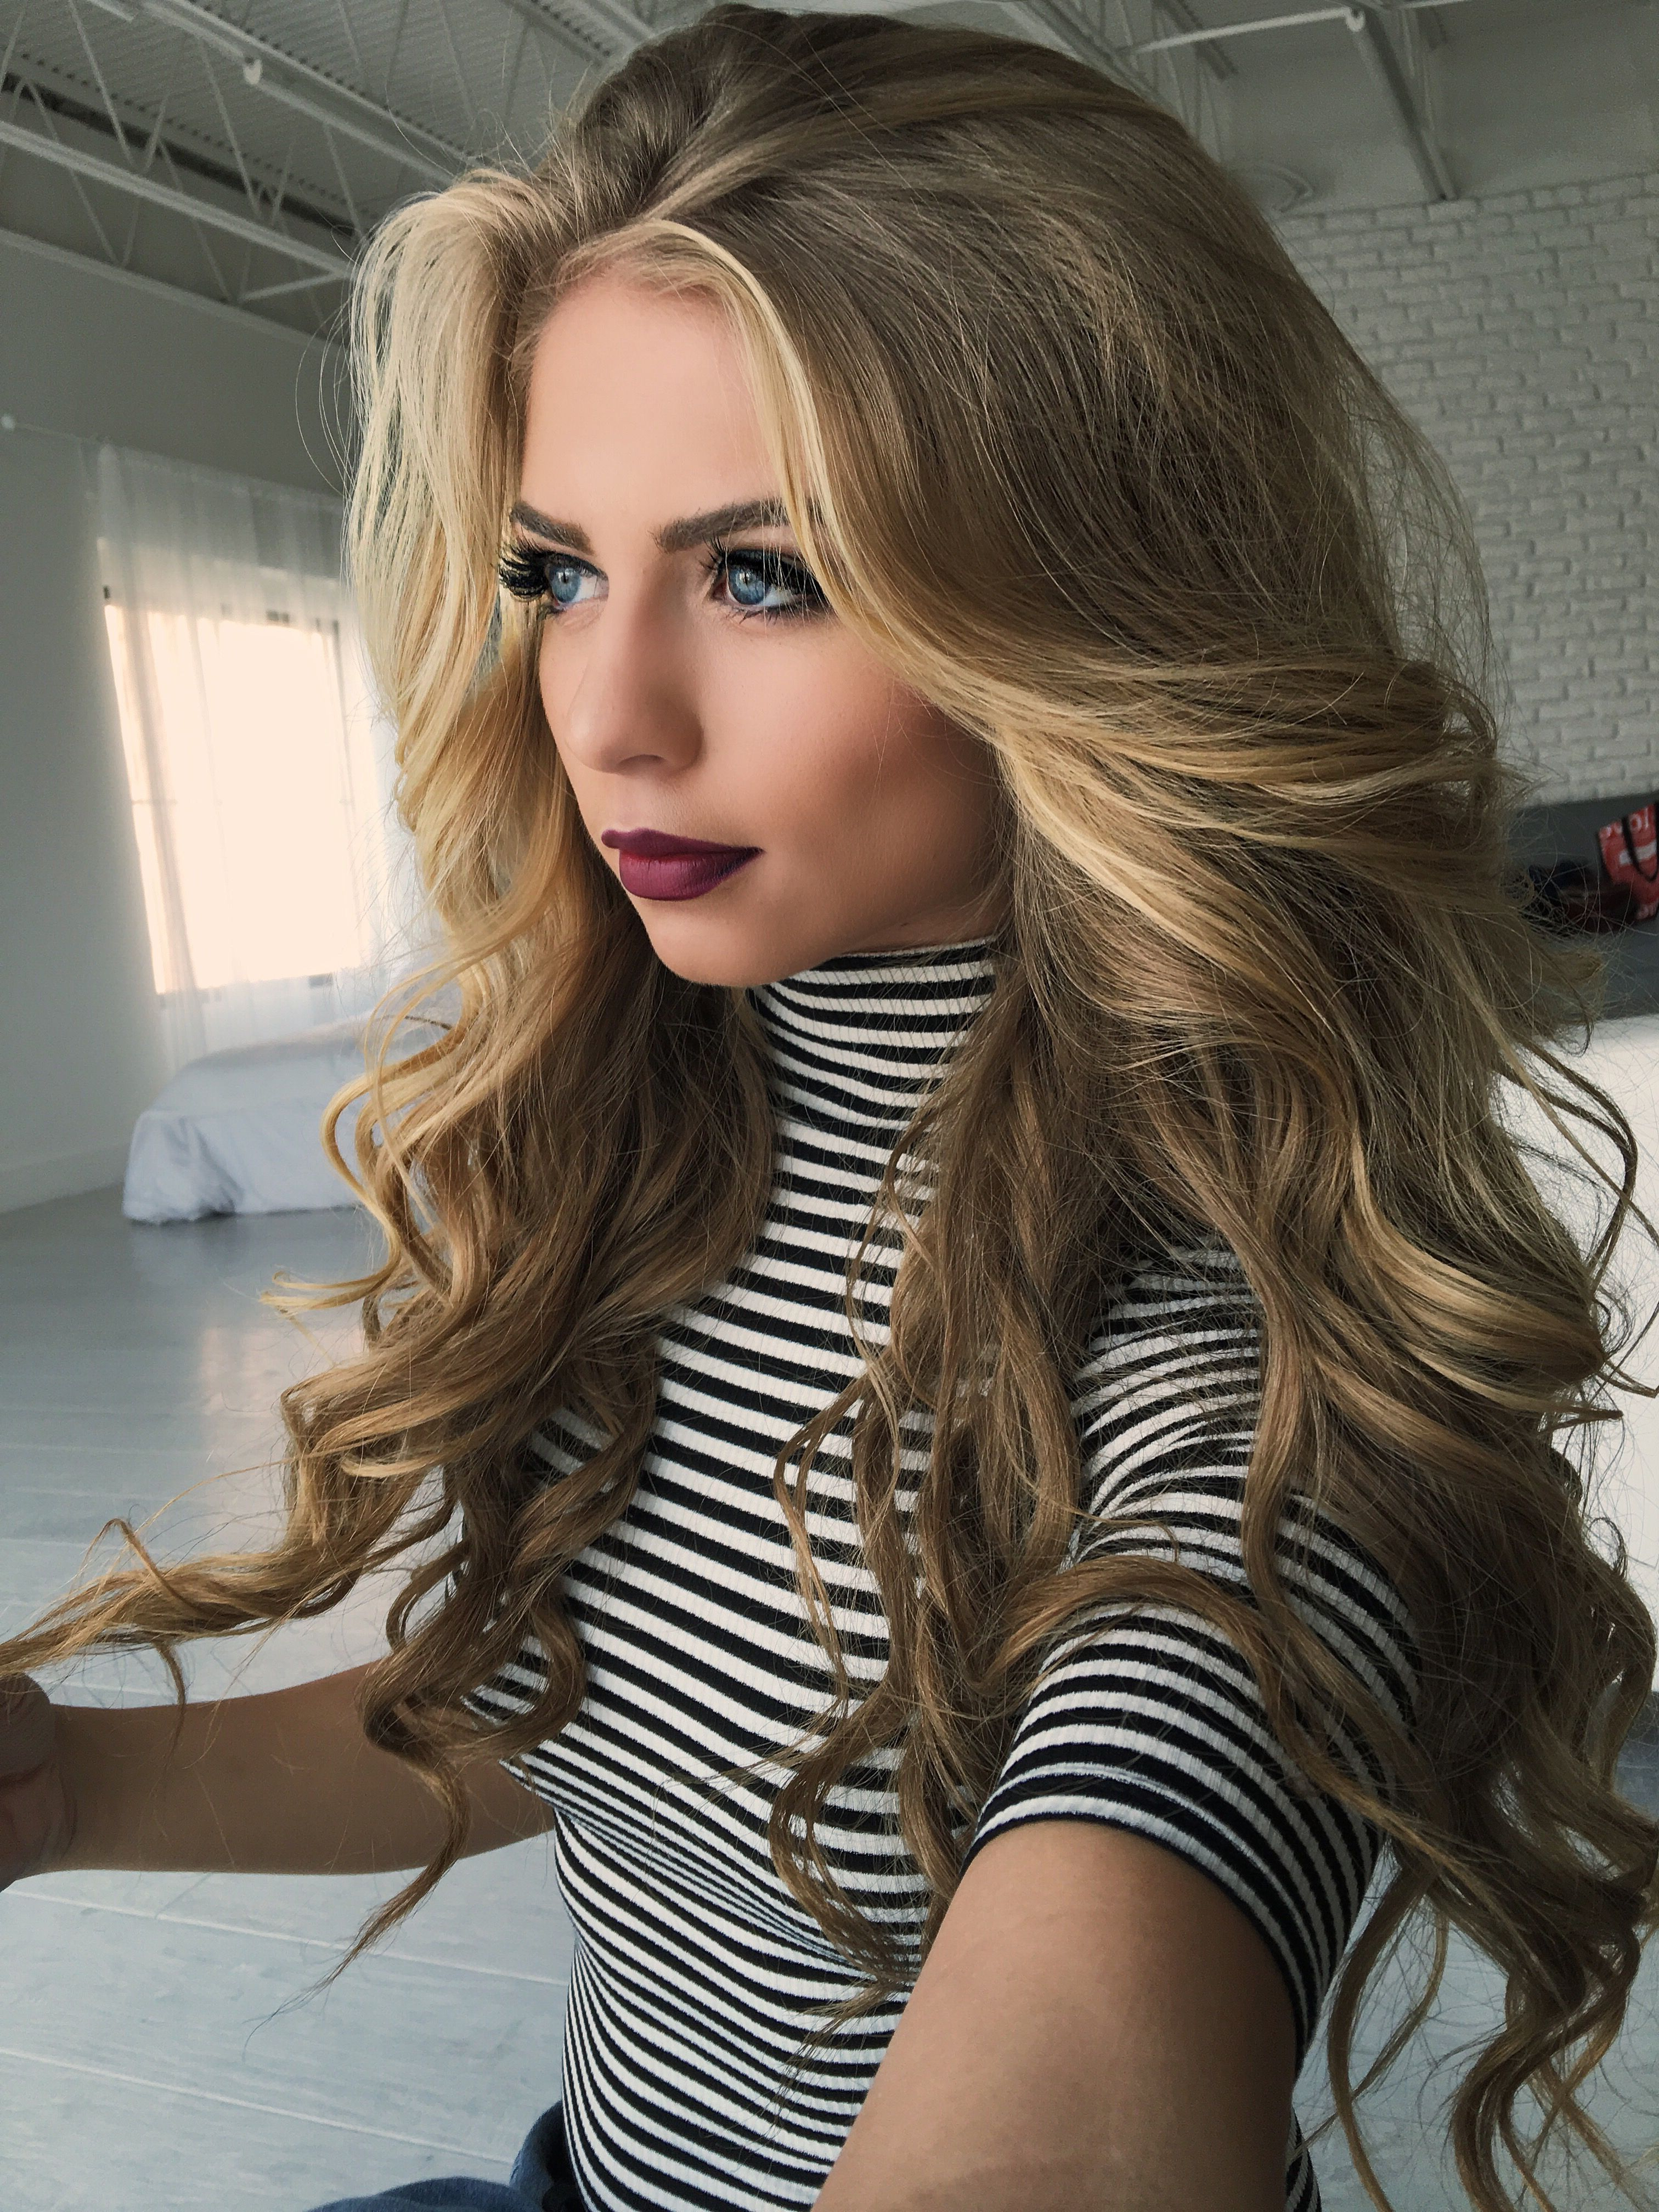 Favorite Beauty Products | Hair | Pinterest | Hair, Hair Styles And For Playful Blonde Curls Hairstyles (View 10 of 20)